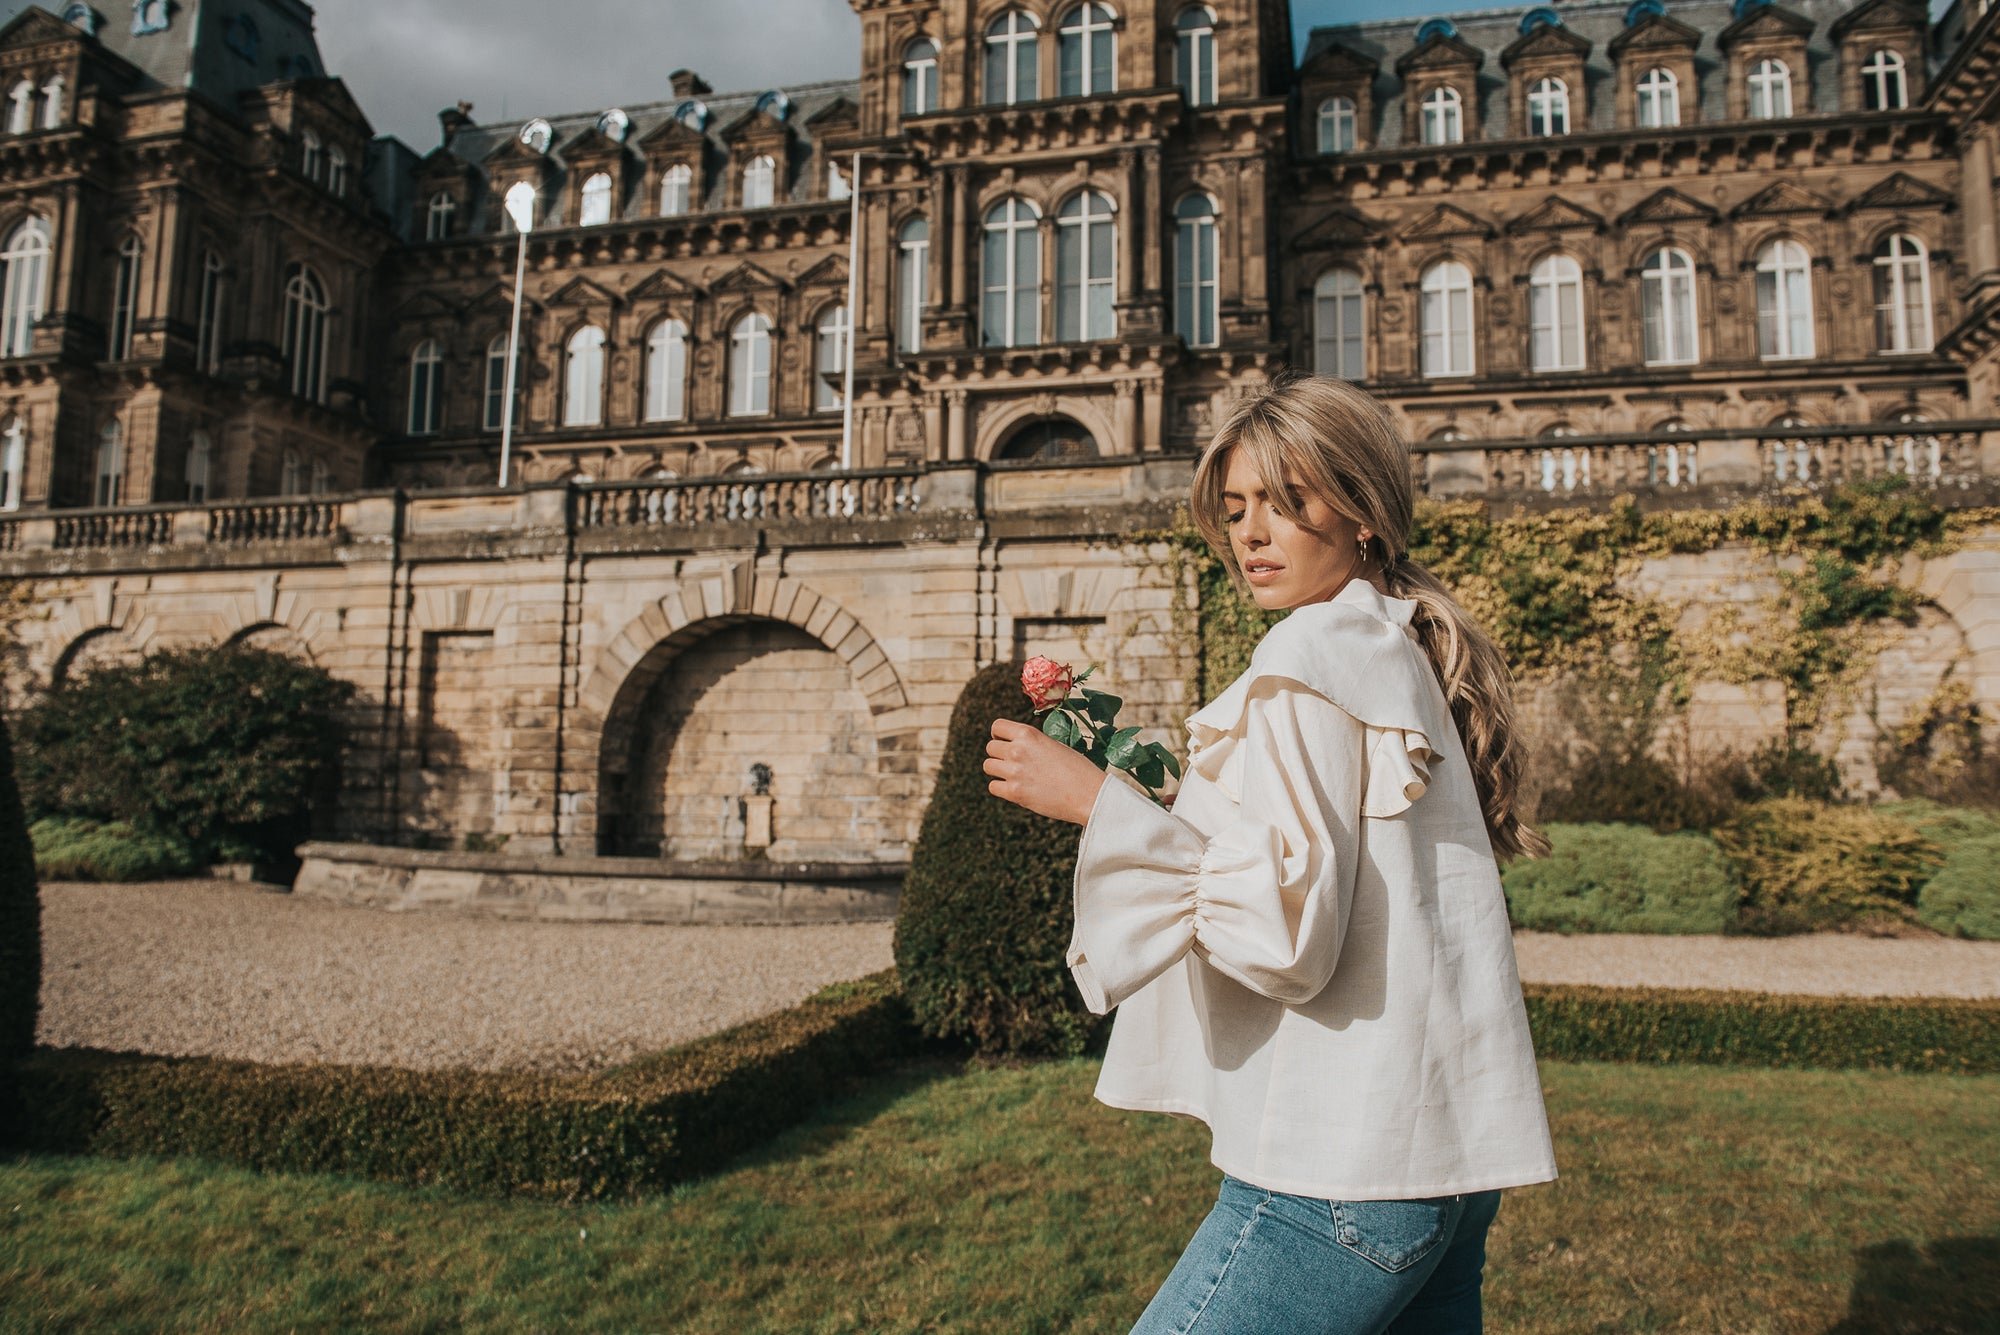 In the grounds of the Bowes Museum, Calla wears the beautifully feminine Marcella blouse. With delicate frills and a raglan sleeve, this east cut works perfectly with your fave pair of skinny jeans